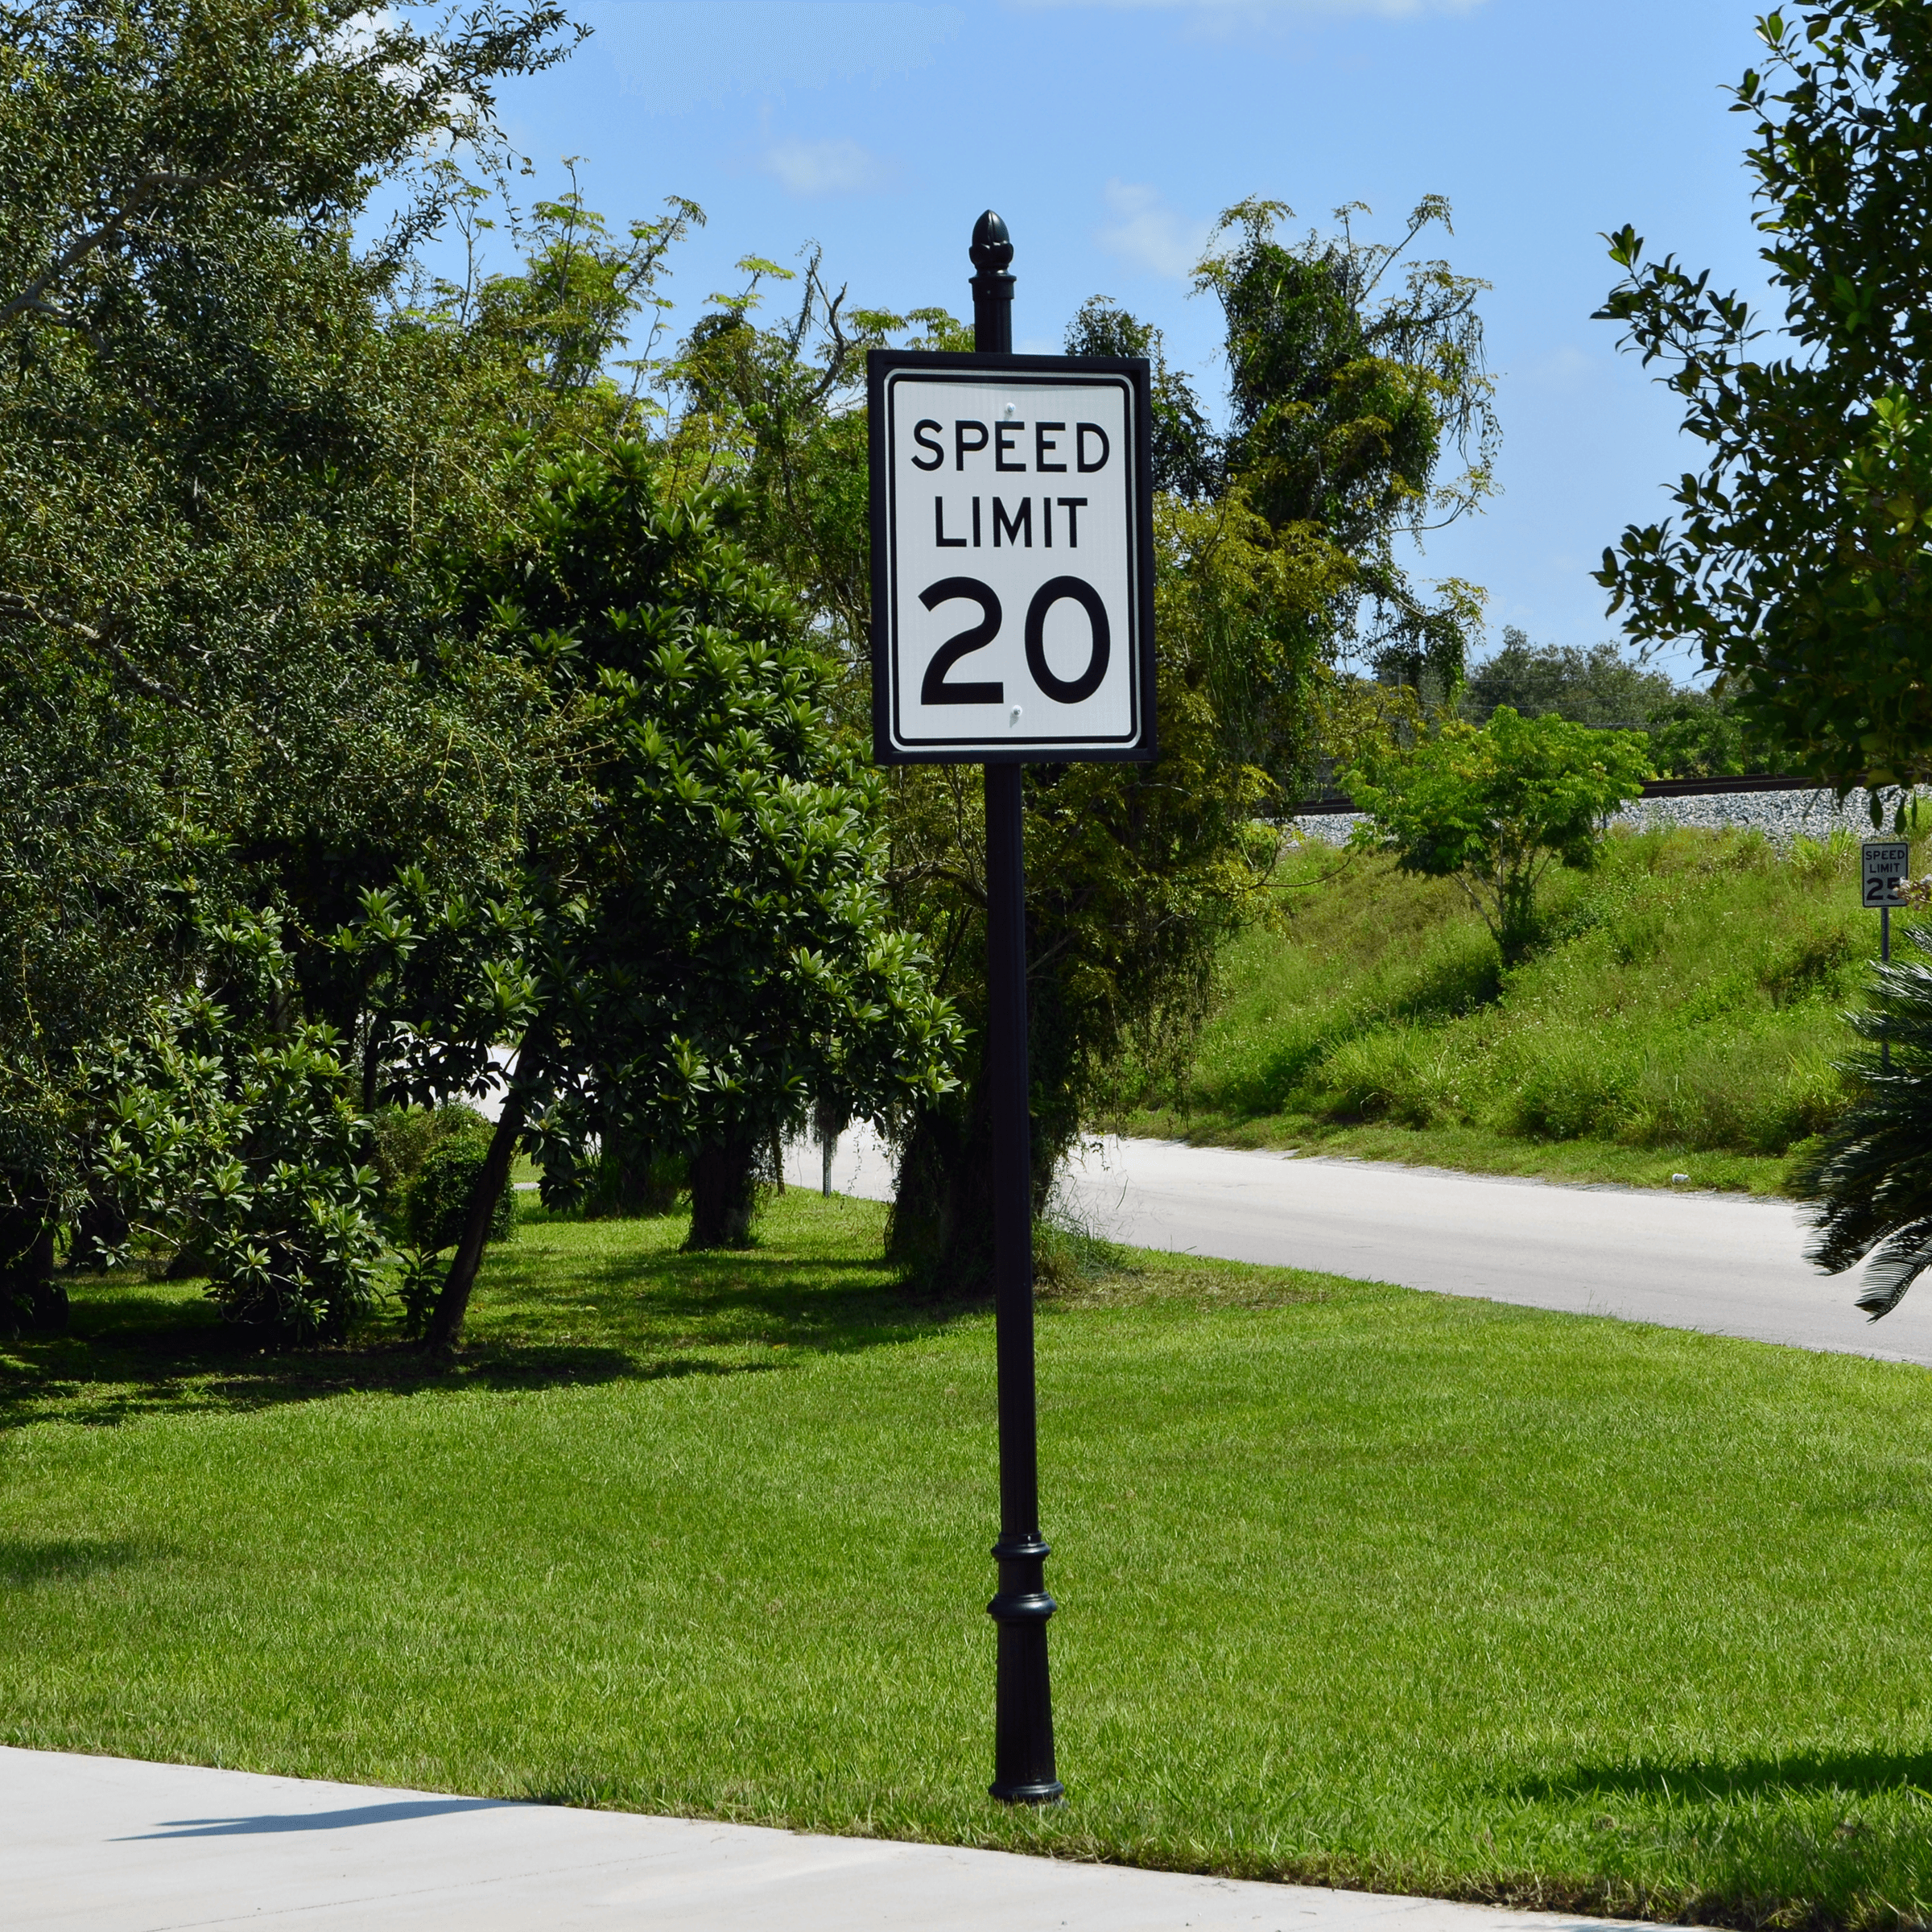 Historic Collection Speed Limit 20